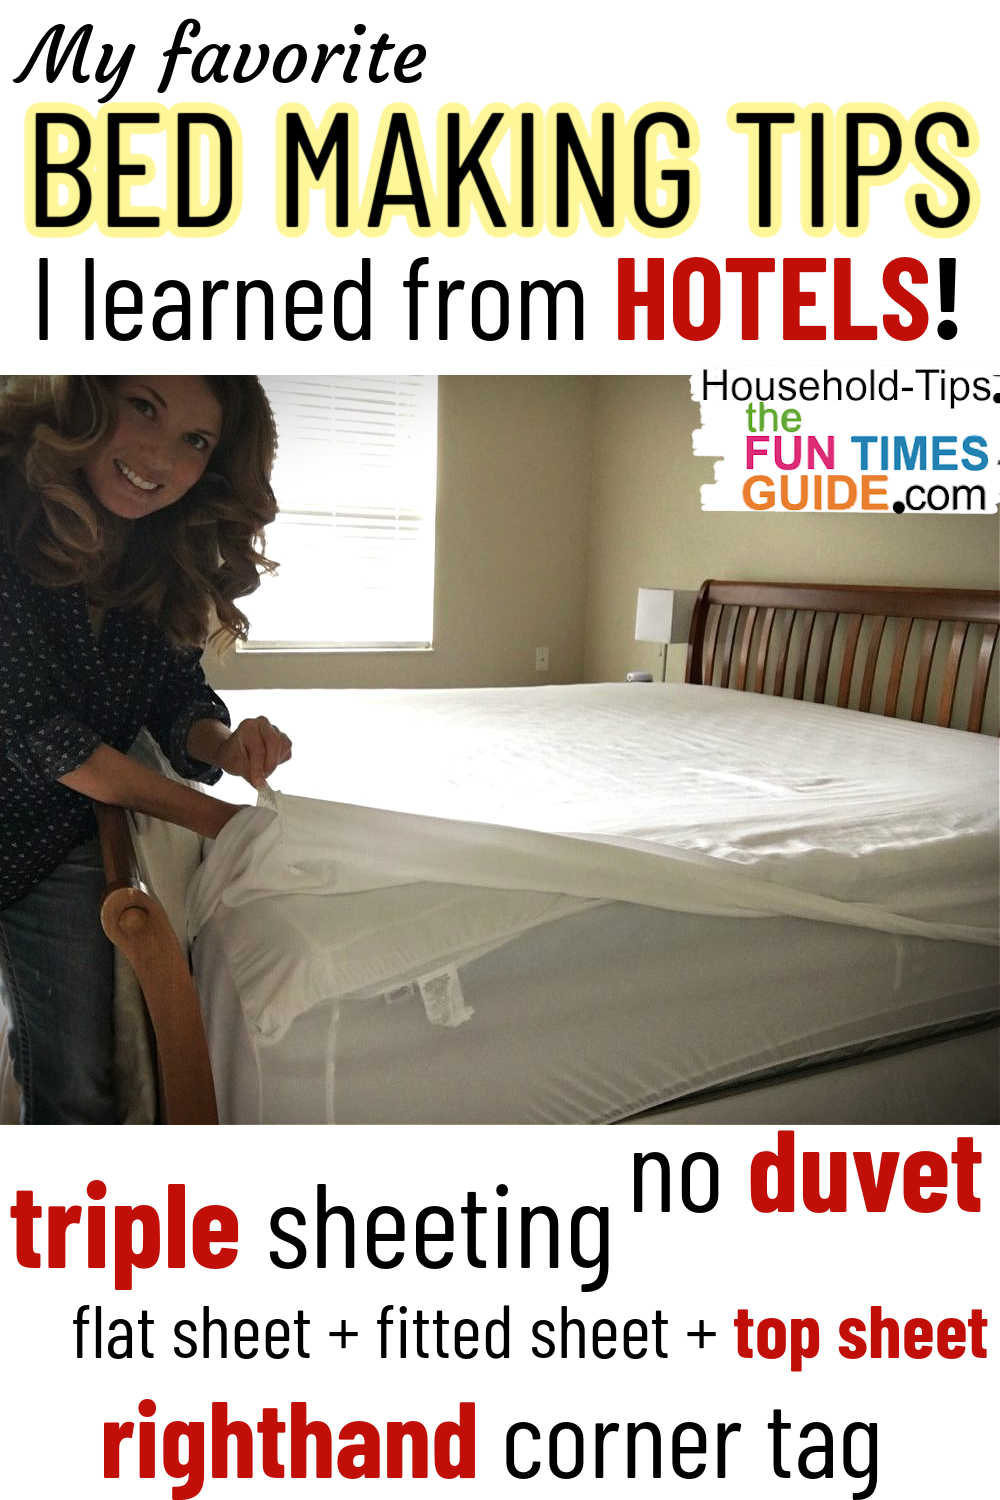 Make Your Bed Quickly Like Hotels Do - Here\'s How To Do Triple Sheeting And Eliminate The Need For A Duvet Cover!